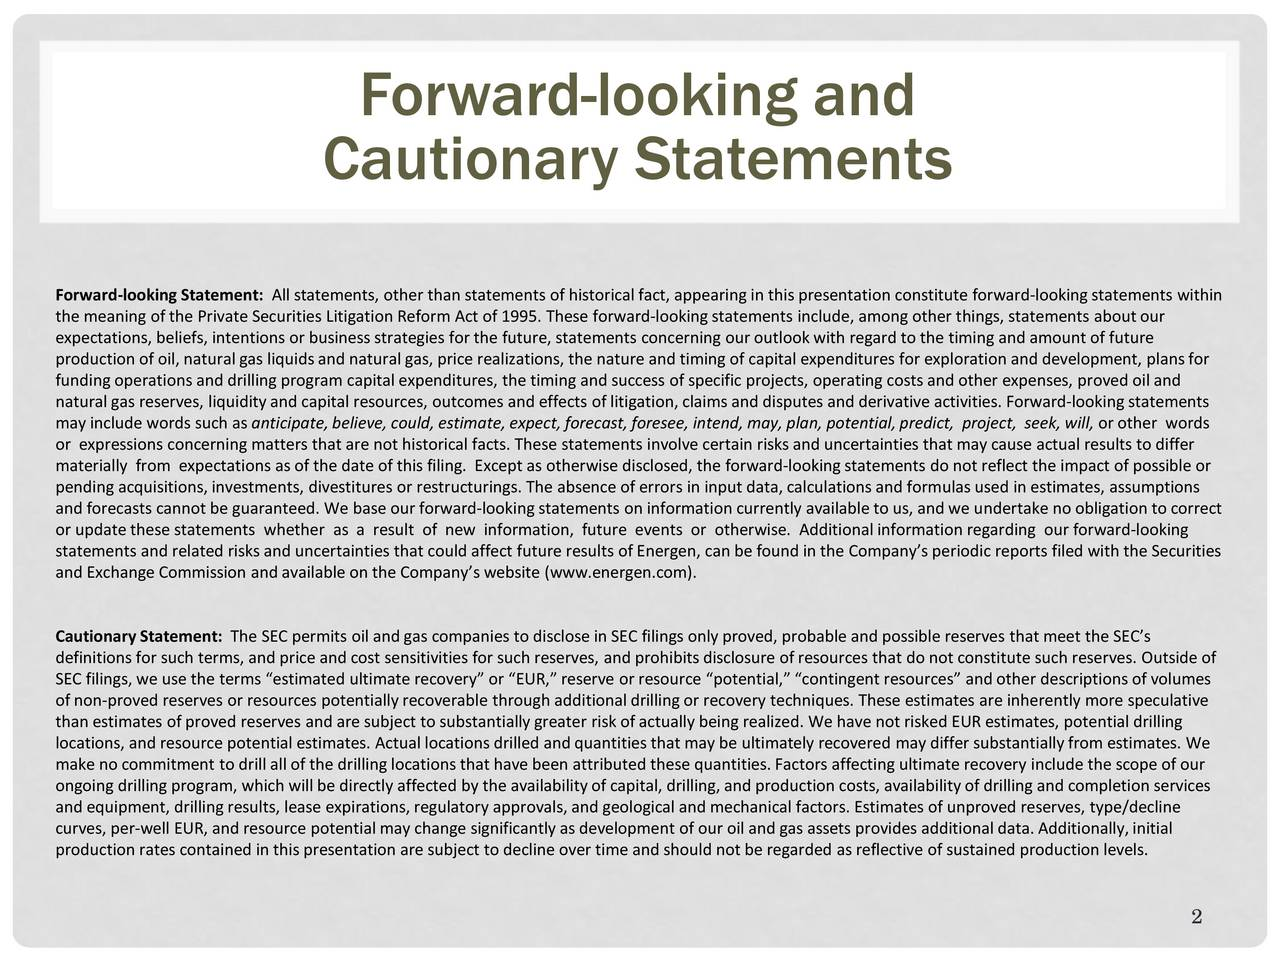 Cautionary Statements Forward-looking Statement: All statements, other than statements of historical fact, appearing in this presentation constitute forward-looking statements within the meaning of the Private Securities Litigation Reform Act of 1995. These forward-looking statements include, among other things, statements about our expectations, beliefs, intentions or business strategies for the future, statements concerning our outlook with regard to the timing and amount of future production of oil, natural gas liquids and natural gas, price realizations, the nature and timing of capital expenditures for exploration and development, plans for funding operations and drilling program capital expenditures, the timing and success of specific projects, operating costs and other expenses, proved oil and natural gas reserves, liquidity and capital resources, outcomes and effects of litigation, claims and disputes and derivativeactivities. Forward-looking statements may include words such as anticipate, believe, could, estimate, expect, forecast, foresee, intend, may, plan, potential, predict, project, seek, will, or other words or expressions concerning matters that are not historical facts. These statements involve certain risks and uncertainties that may cause actual results to differ materially from expectations as of the date of this filing. Except as otherwise disclosed, the forward-looking statements do not reflect the impact of possible or pending acquisitions, investments, divestitures or restructurings. The absence of errors in input data, calculations and form ulas used in estimates, assumptions and forecasts cannot be guaranteed. We base our forward-looking statements on information currently available to us, and we undertake no obligation to correct or update these statements whether as a result of new information, future events or otherwise. Additional information regarding our forward-looking statements and related risks and uncertainties that could affect